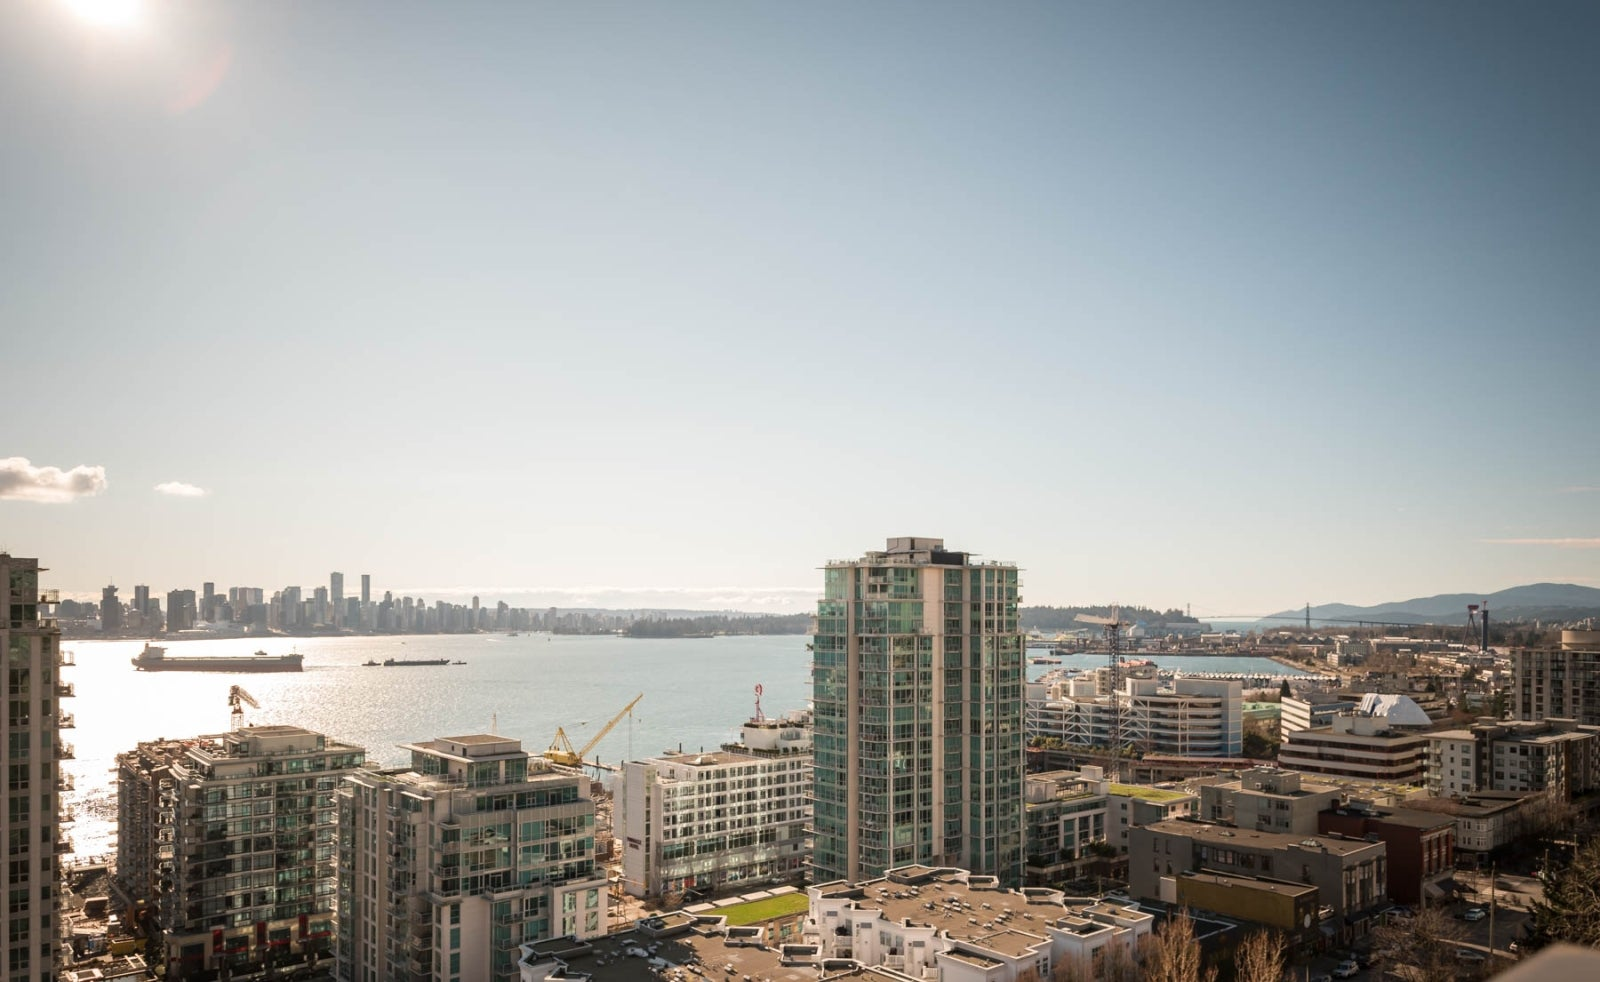 1601 145 ST GEORGES AVENUE - Lower Lonsdale Apartment/Condo for sale, 1 Bedroom (R2244405) #17